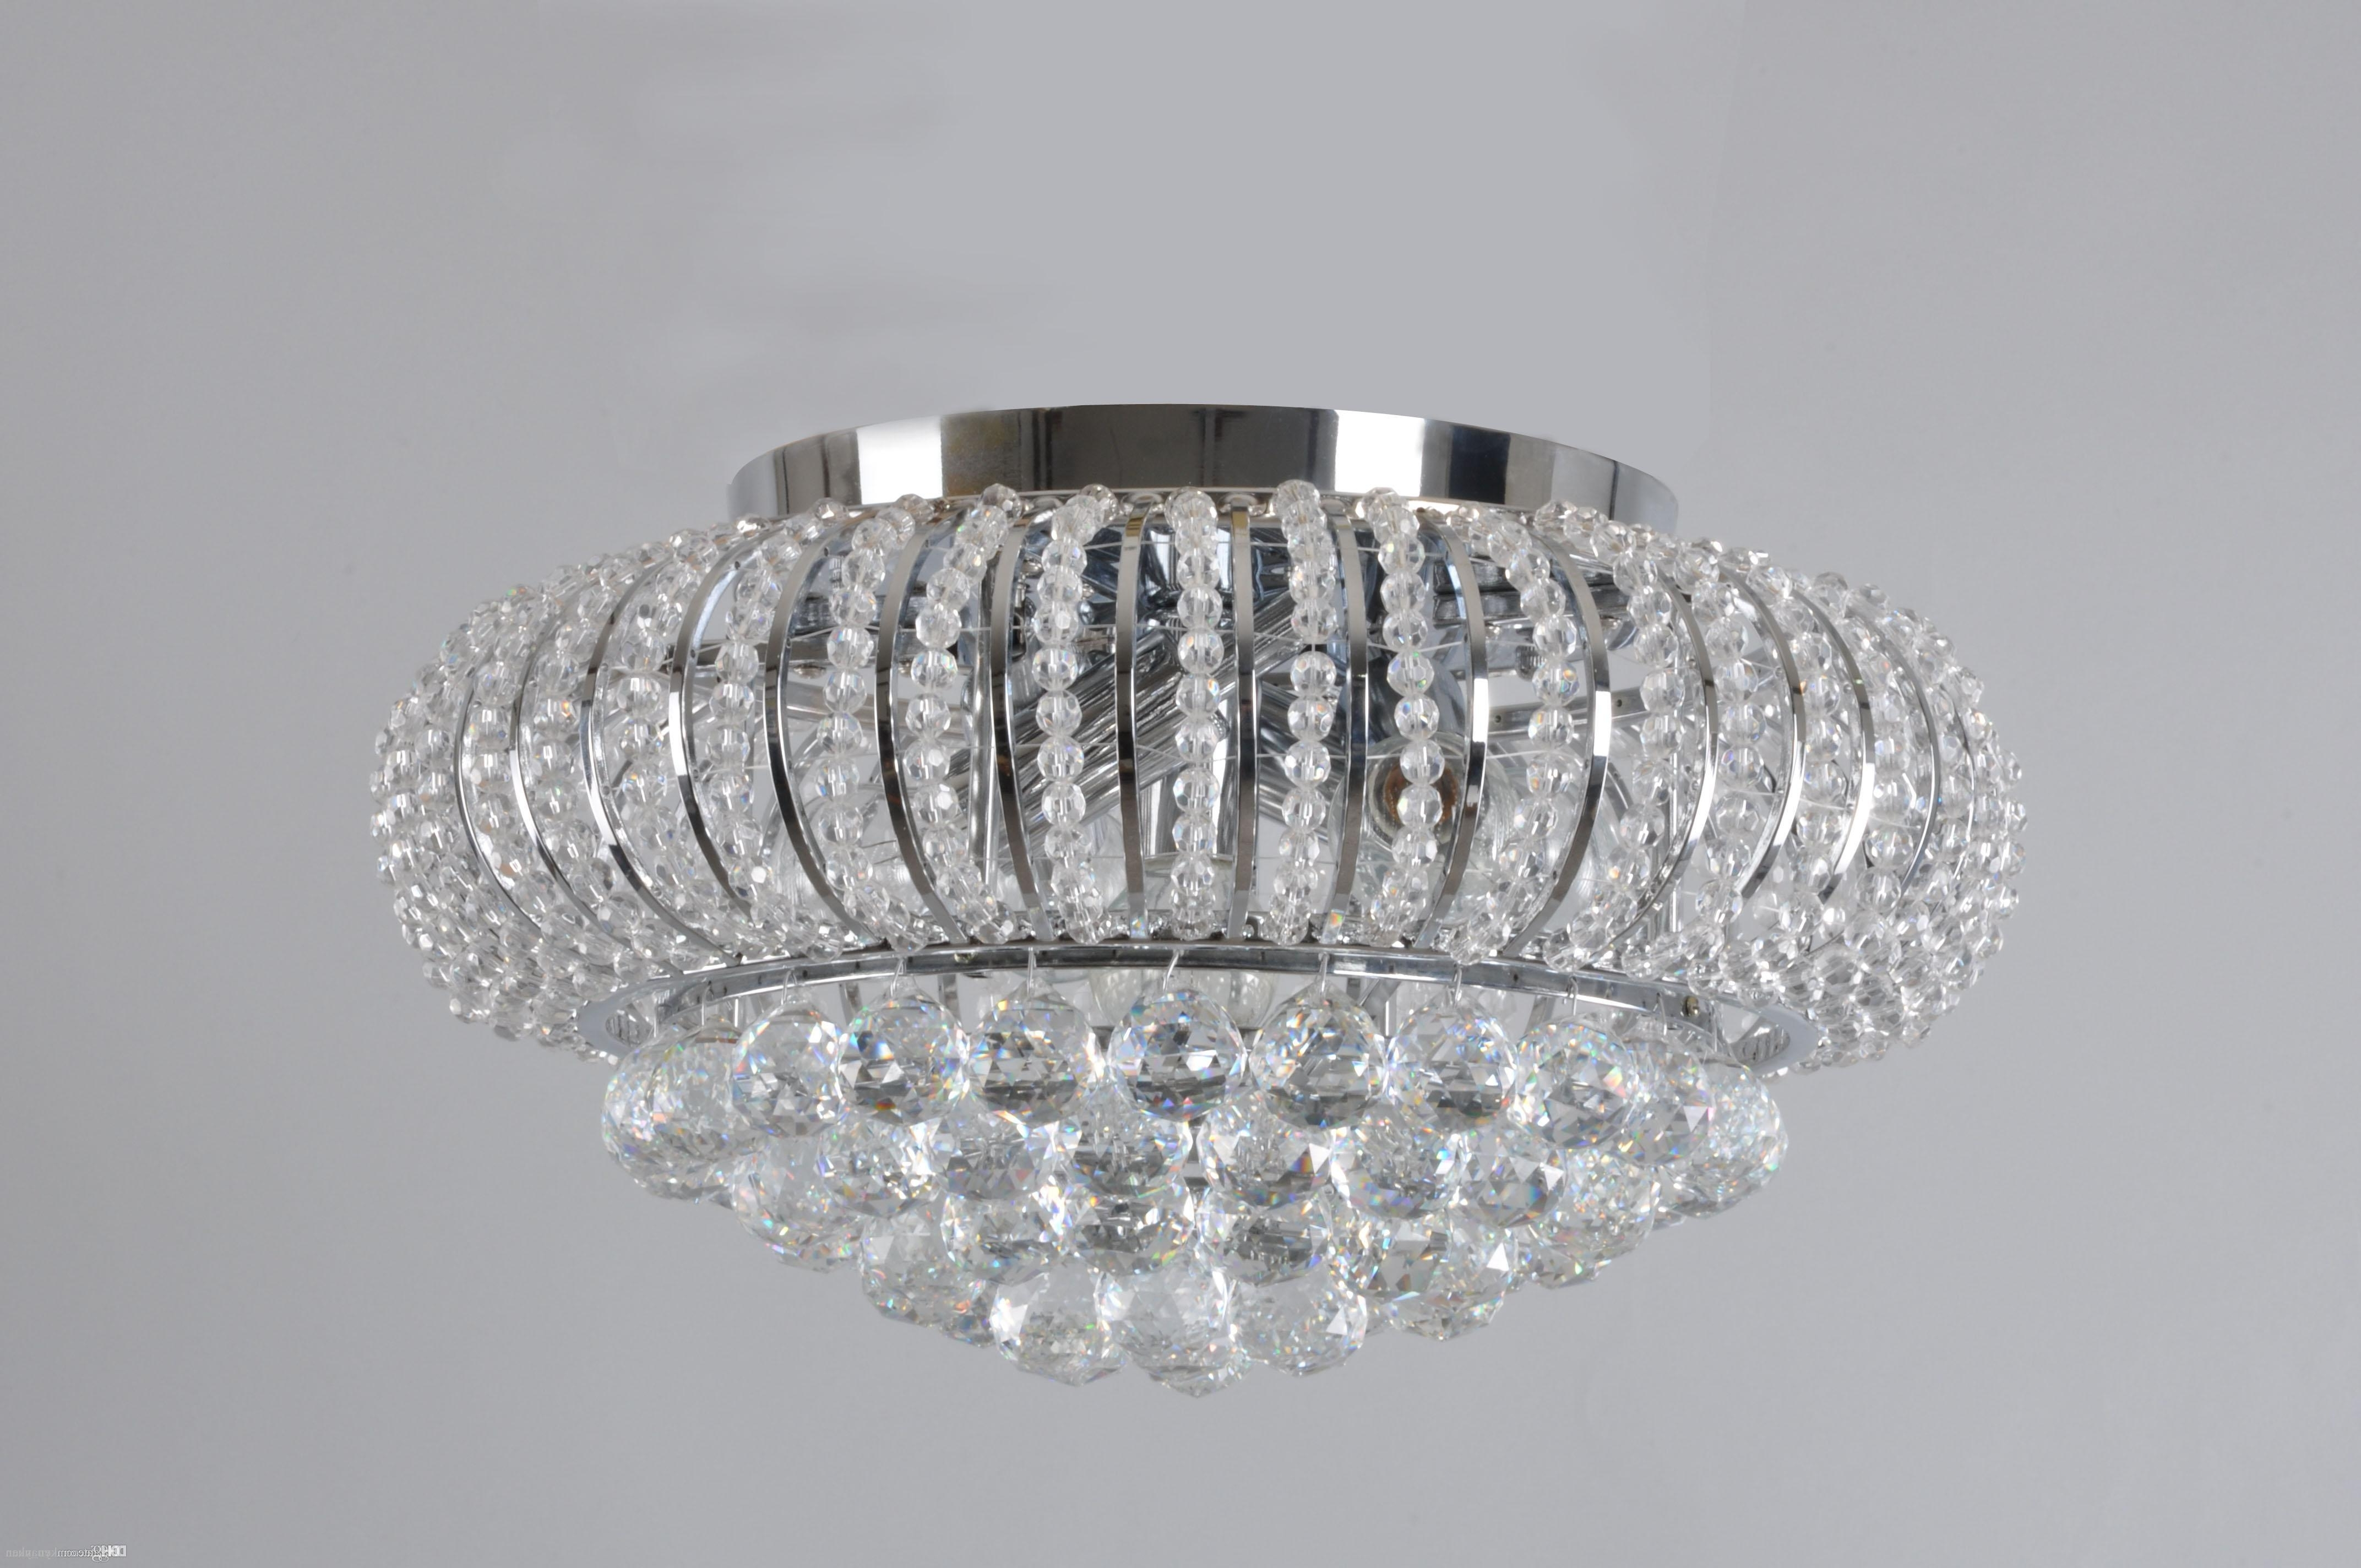 Flush Chandelier Ceiling Lights Pertaining To Popular 2018 Ceiling Lights Living Room Bed Room Crystal Ceiling Lights Star (View 7 of 15)